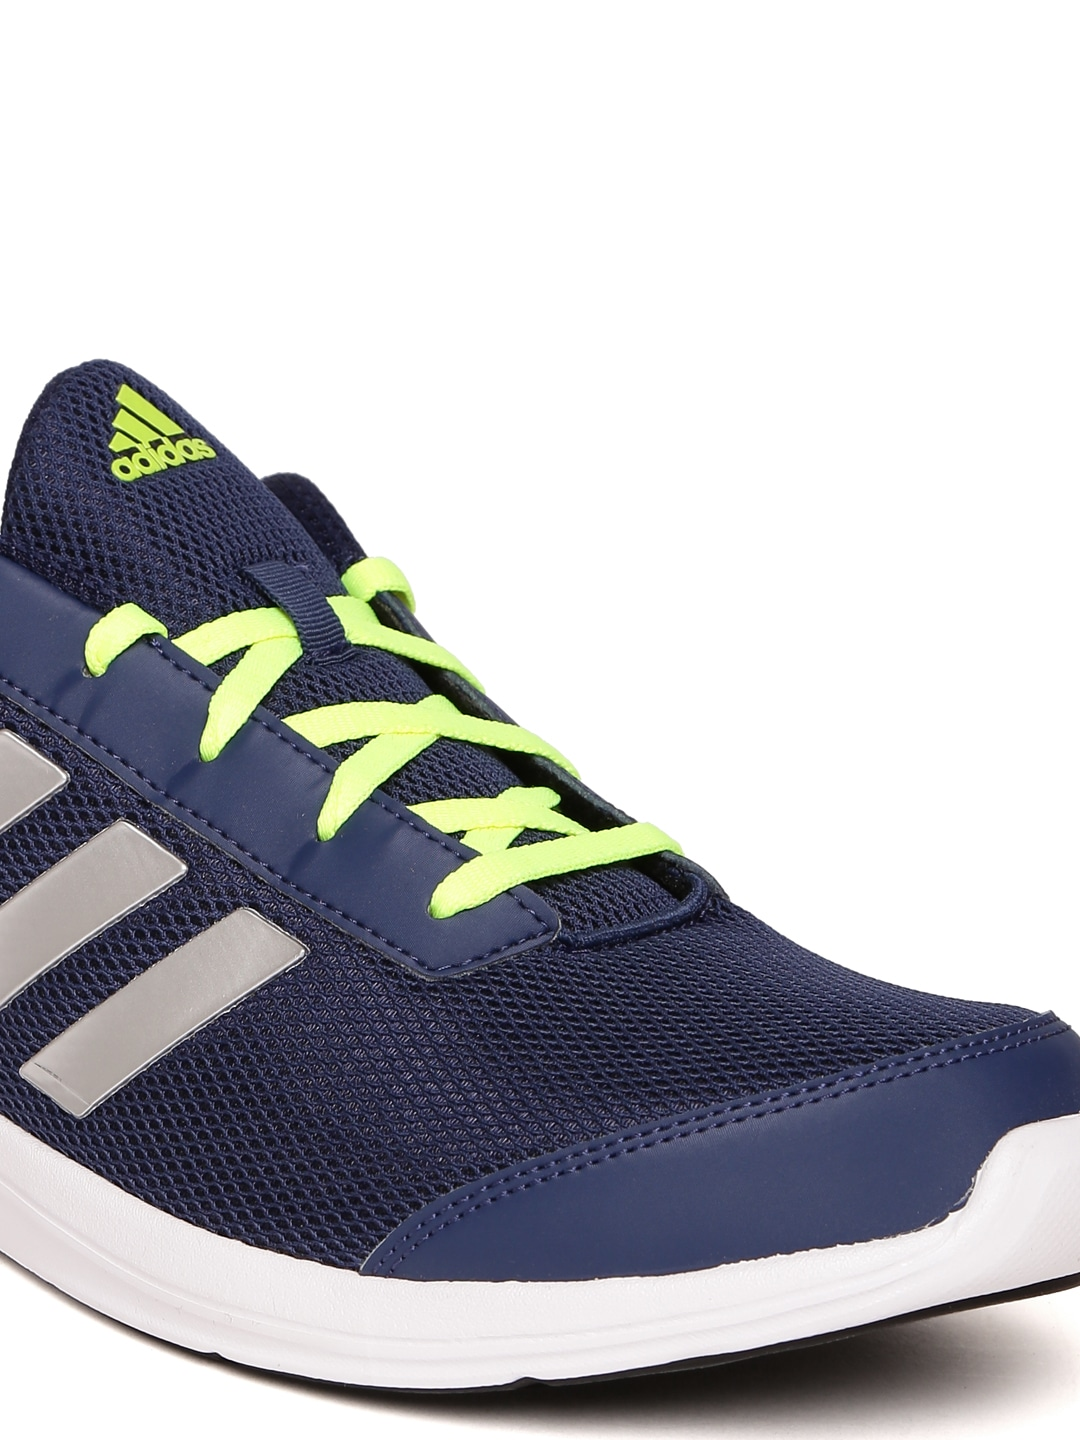 adidas shoes blue and white. adidas shoes blue and white i